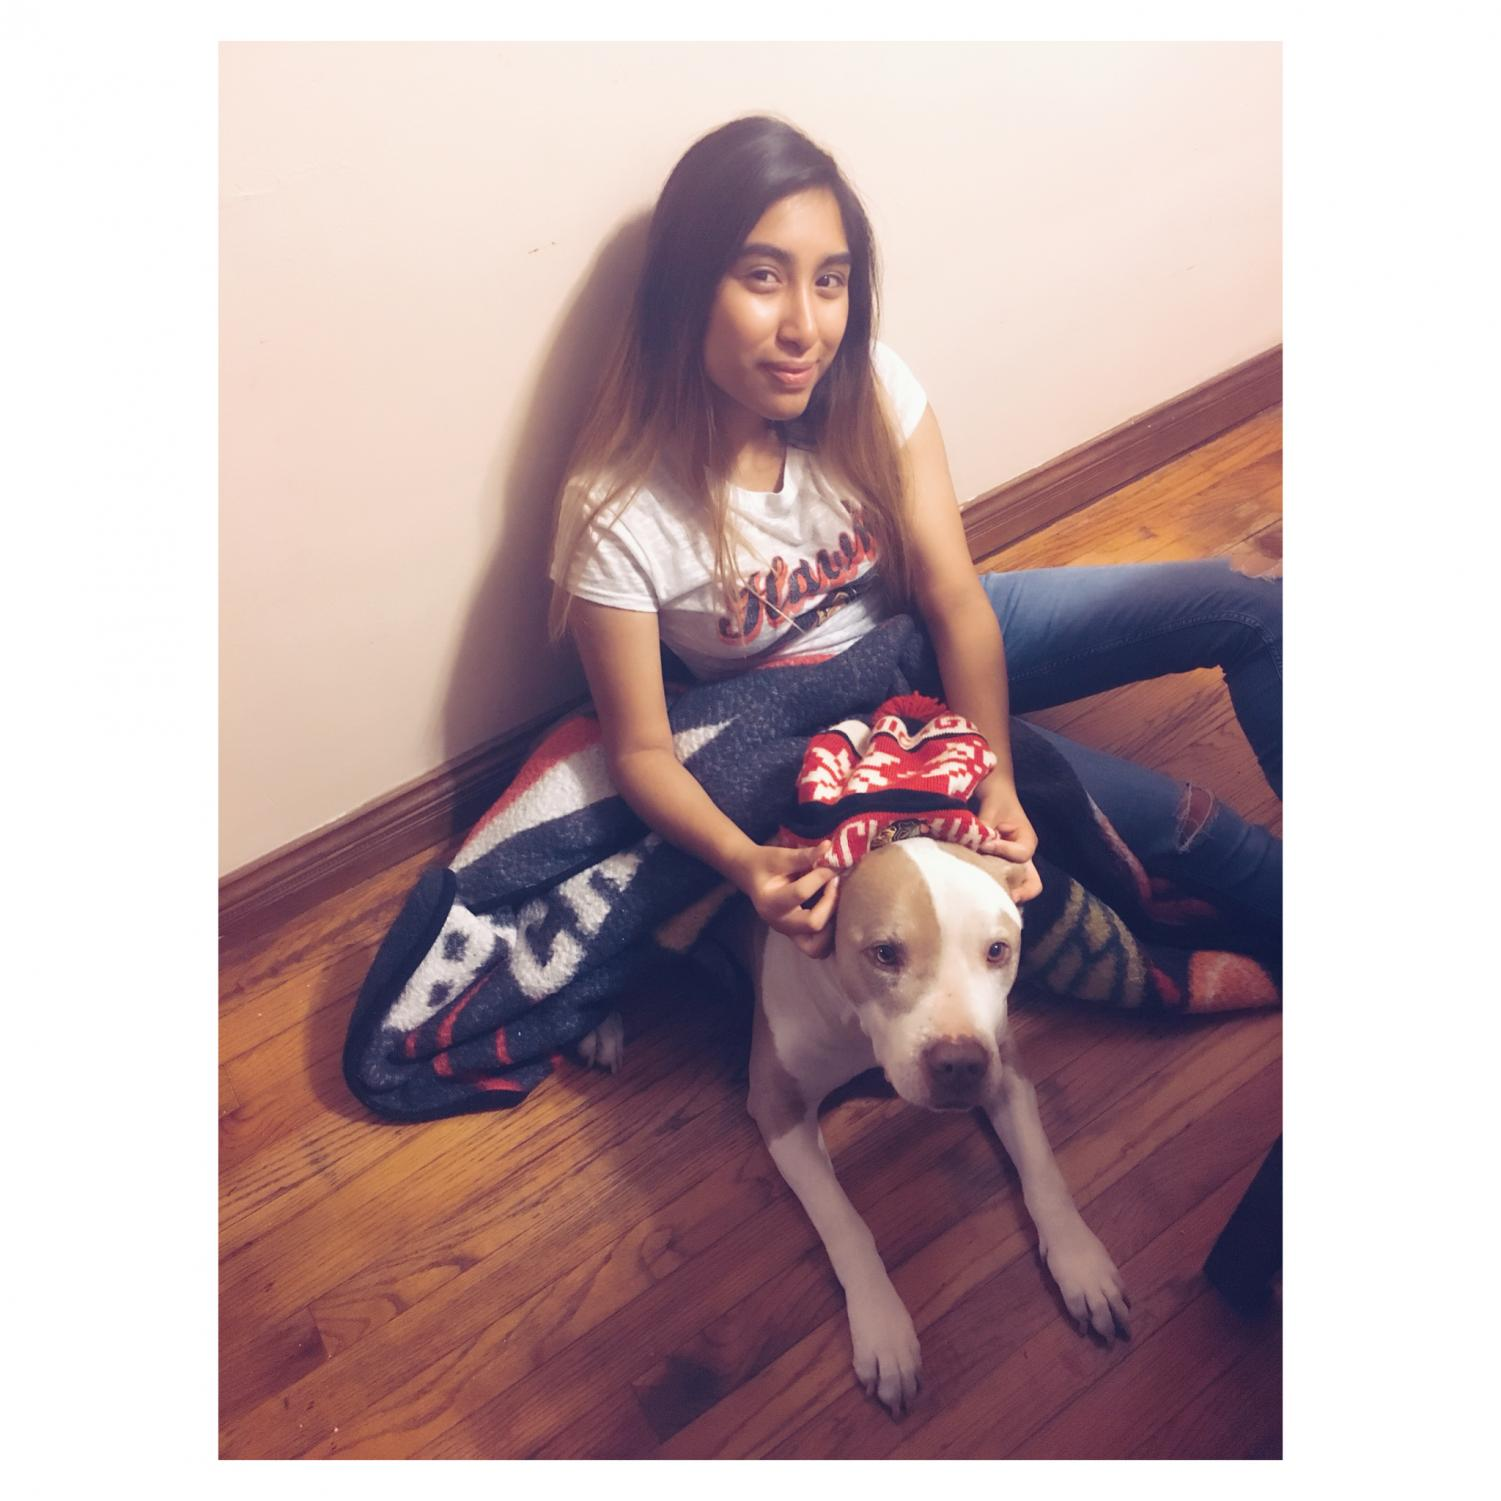 Sandra Castellanos and her dog Koko pose while wearing some Blackhawk gear.